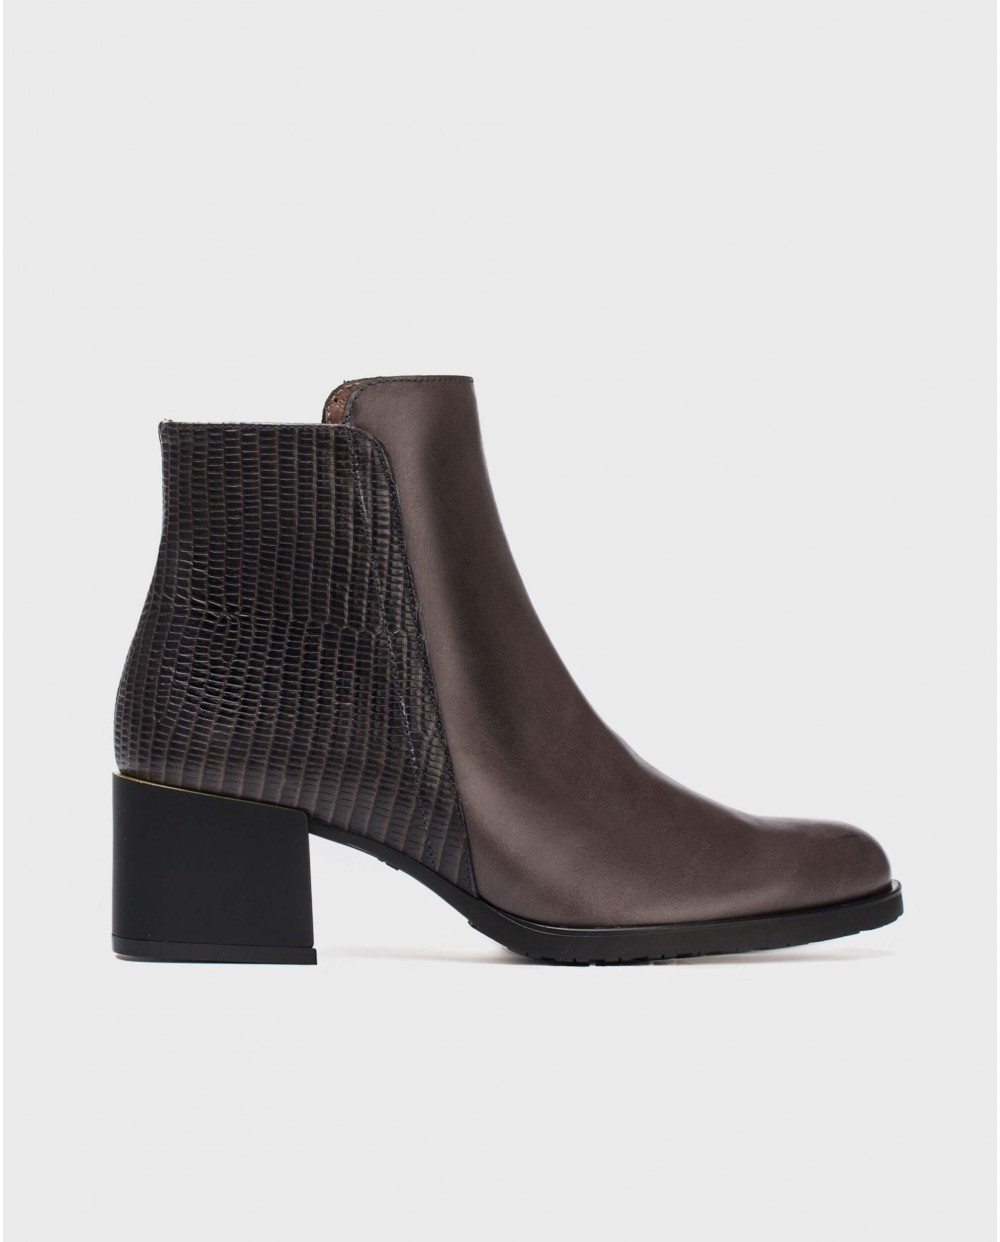 Wonders--Fantasy leather ankle boot